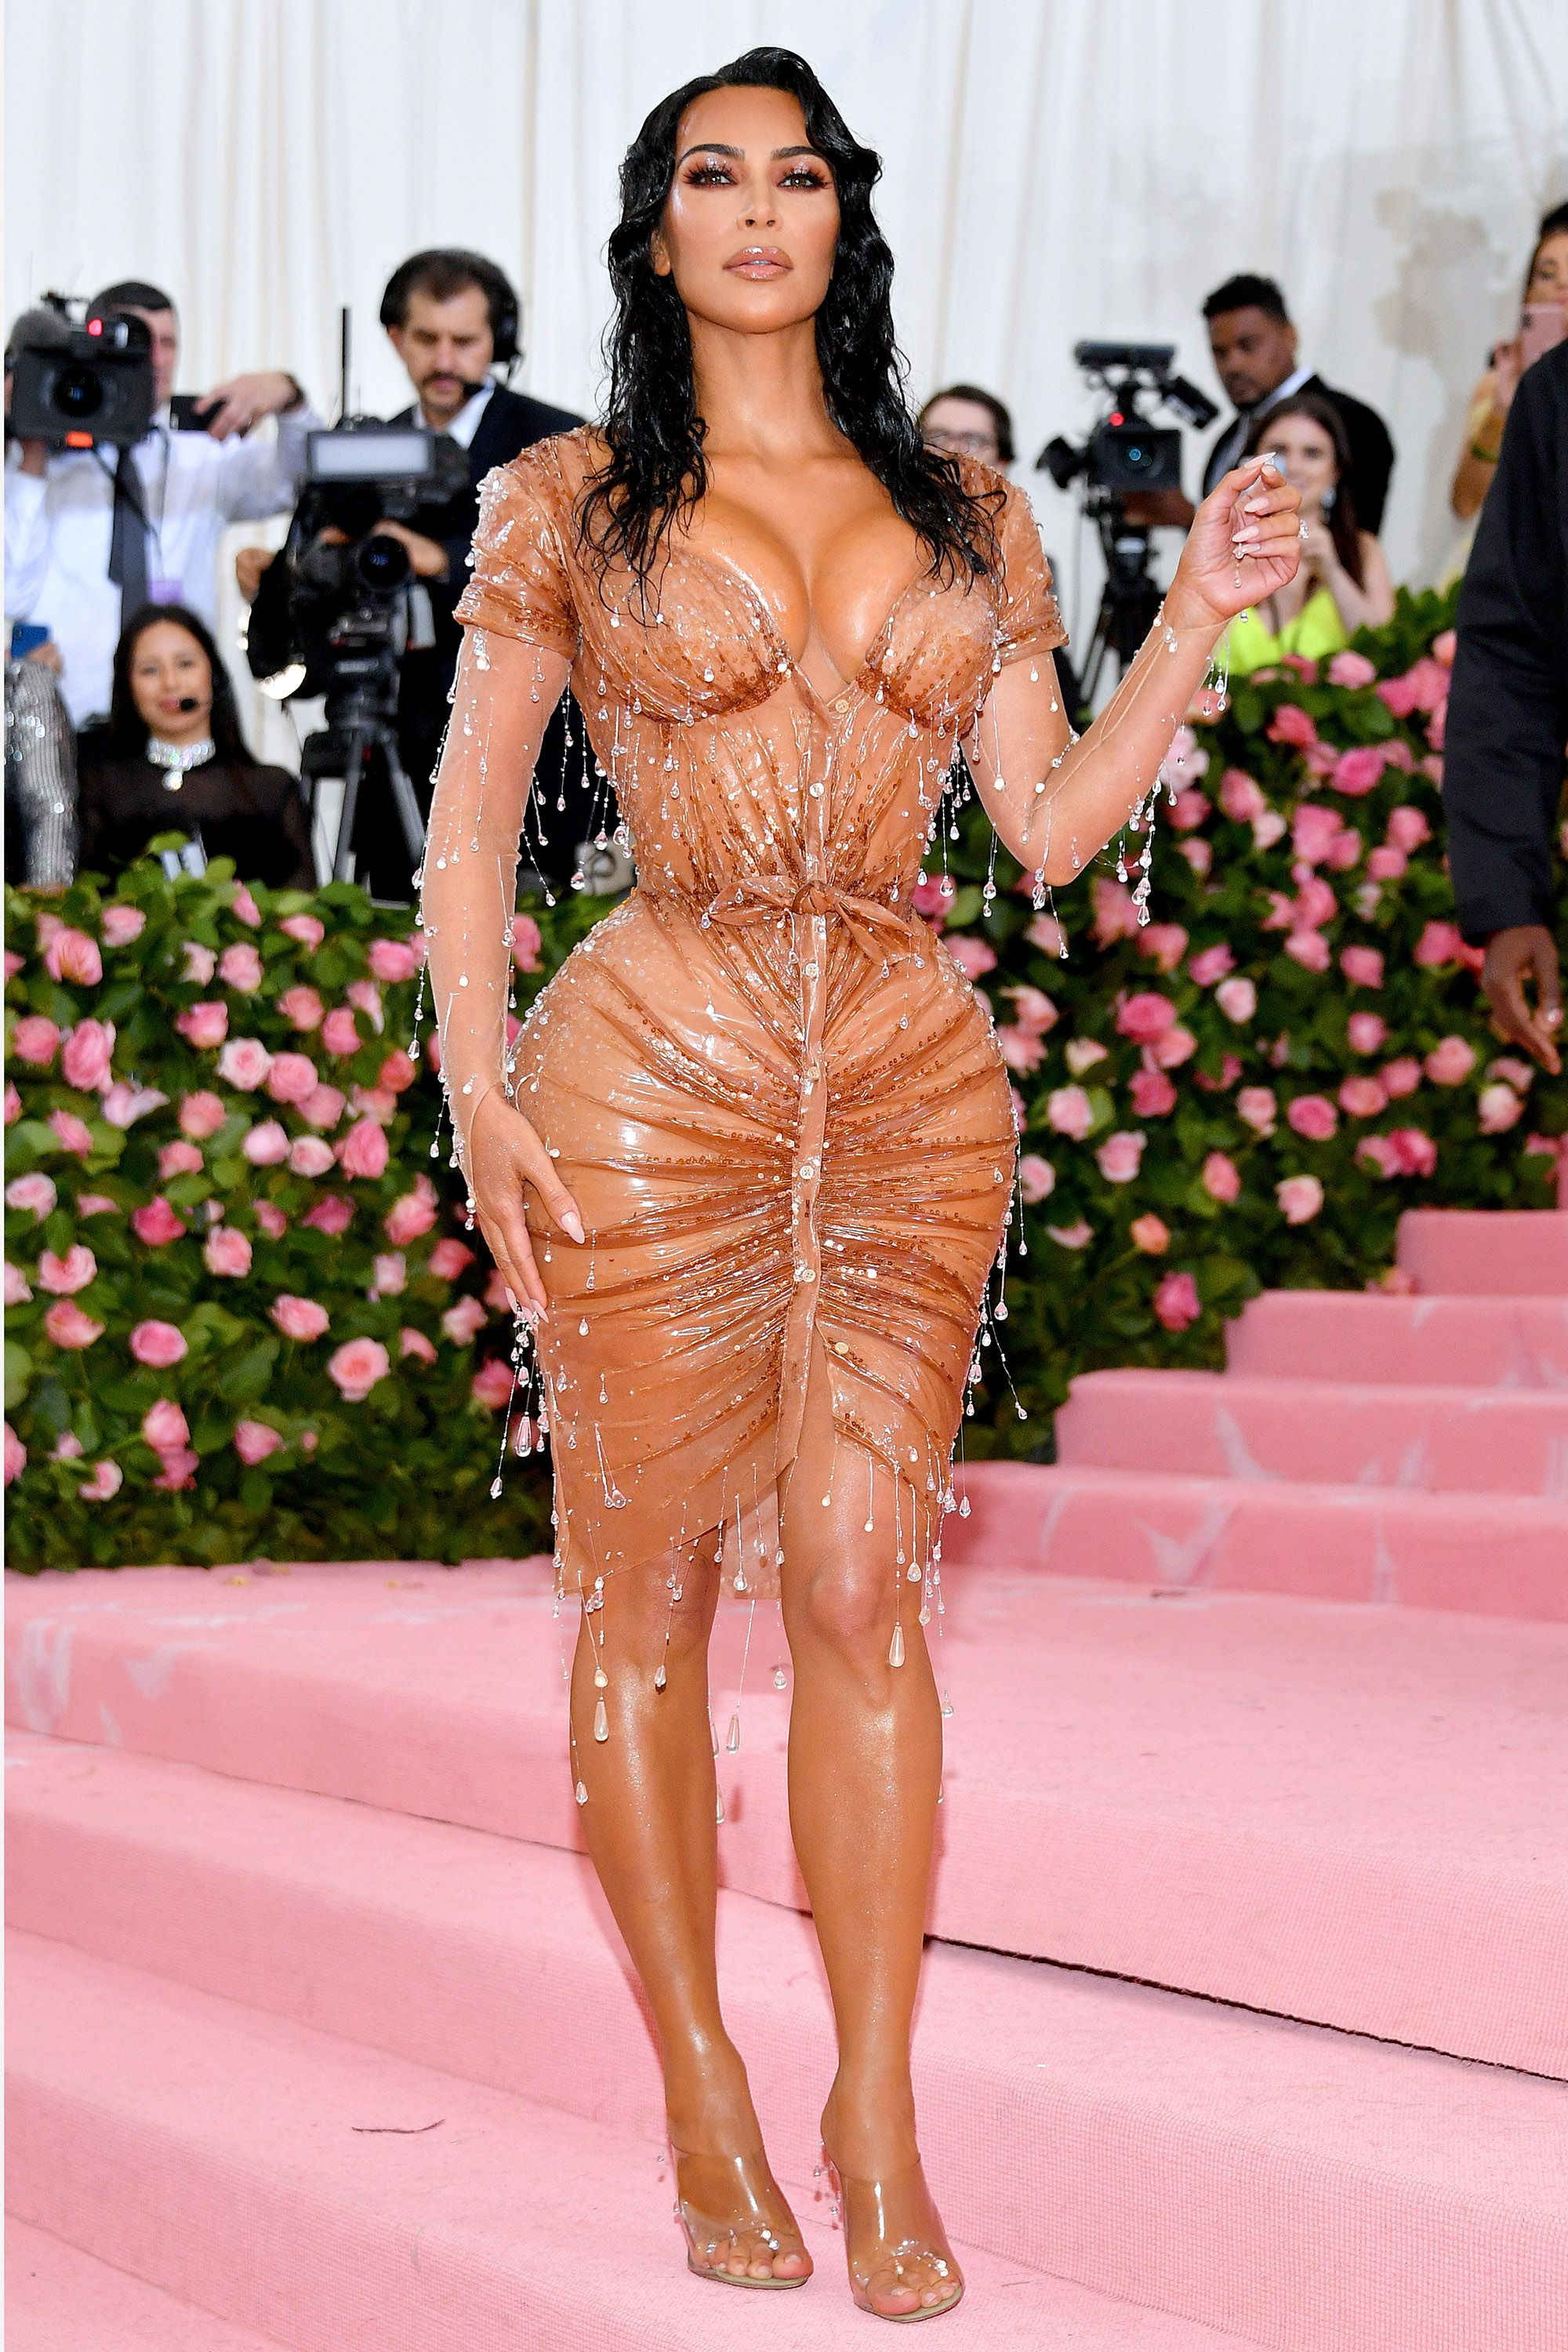 Image result for Kim Kardashian's Met Gala dress, 2019